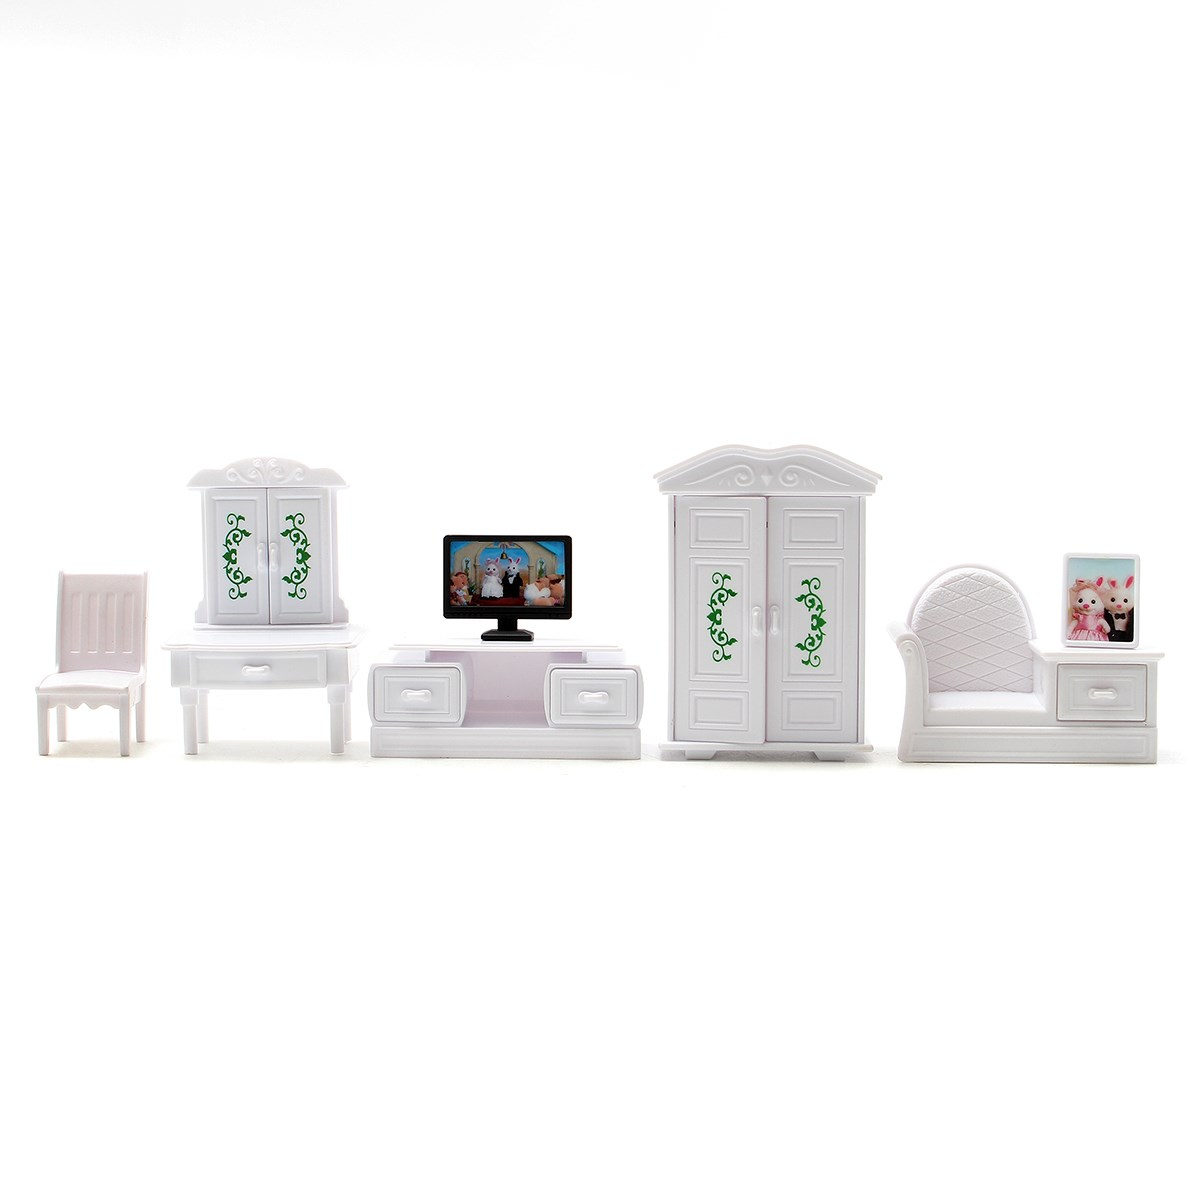 Aliexpress Buy New DIY White Living Room Set Plastic Doll House Miniatures Furniture Sets Kits Toy Home Decor Kids Birthday Gifts From Reliable